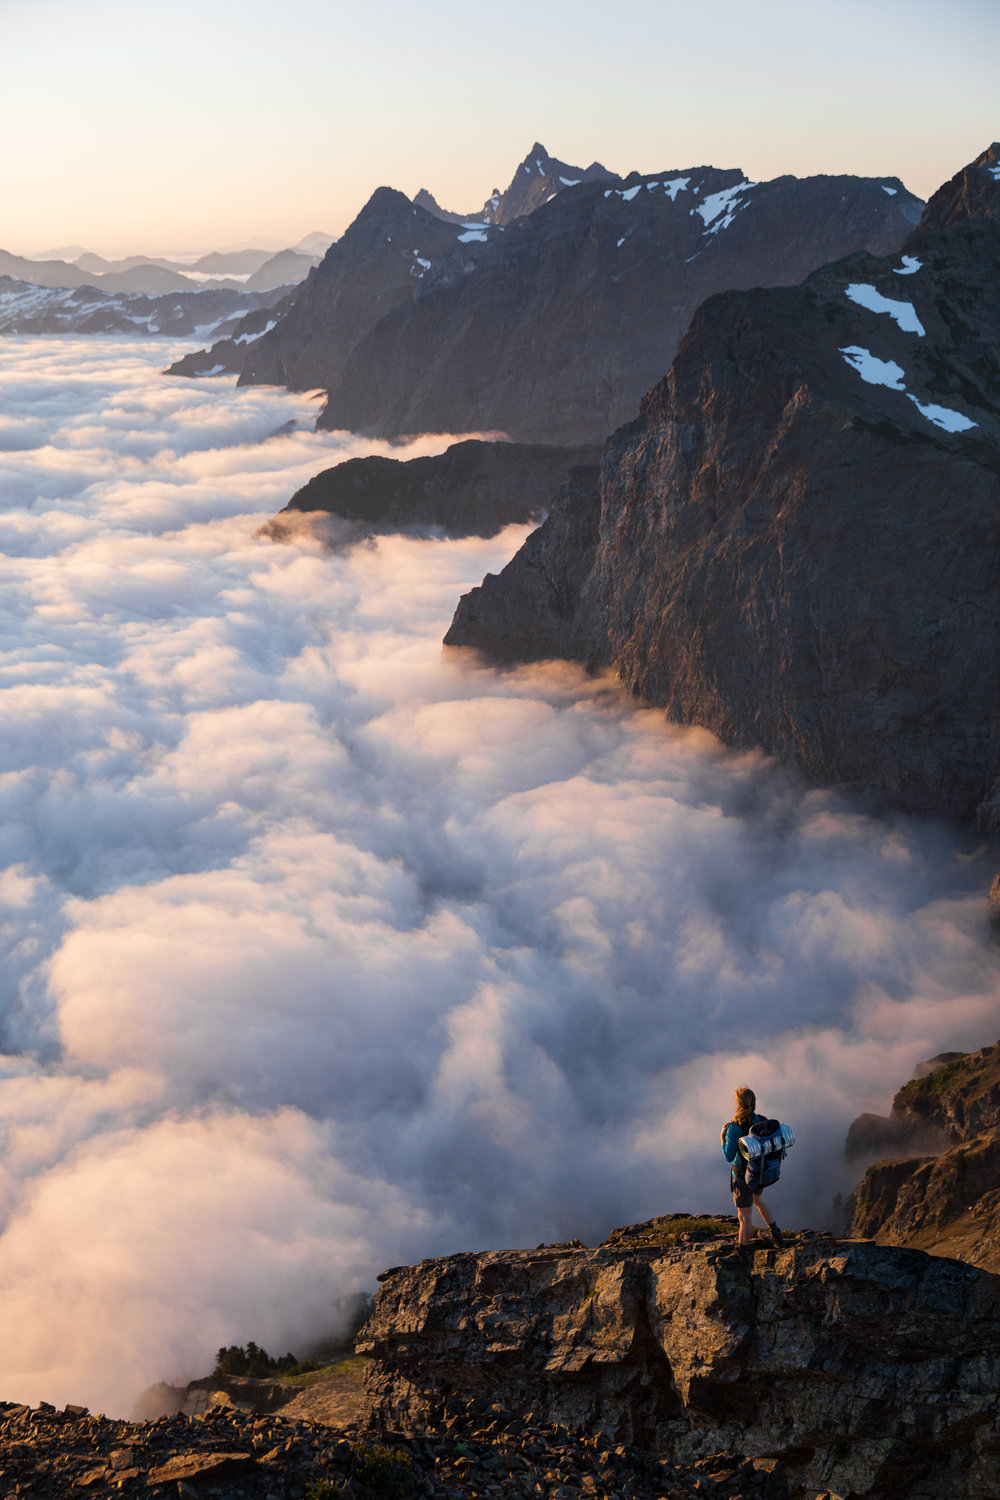 TaylorBurk_MountCheam_Fog+Hiker.jpg